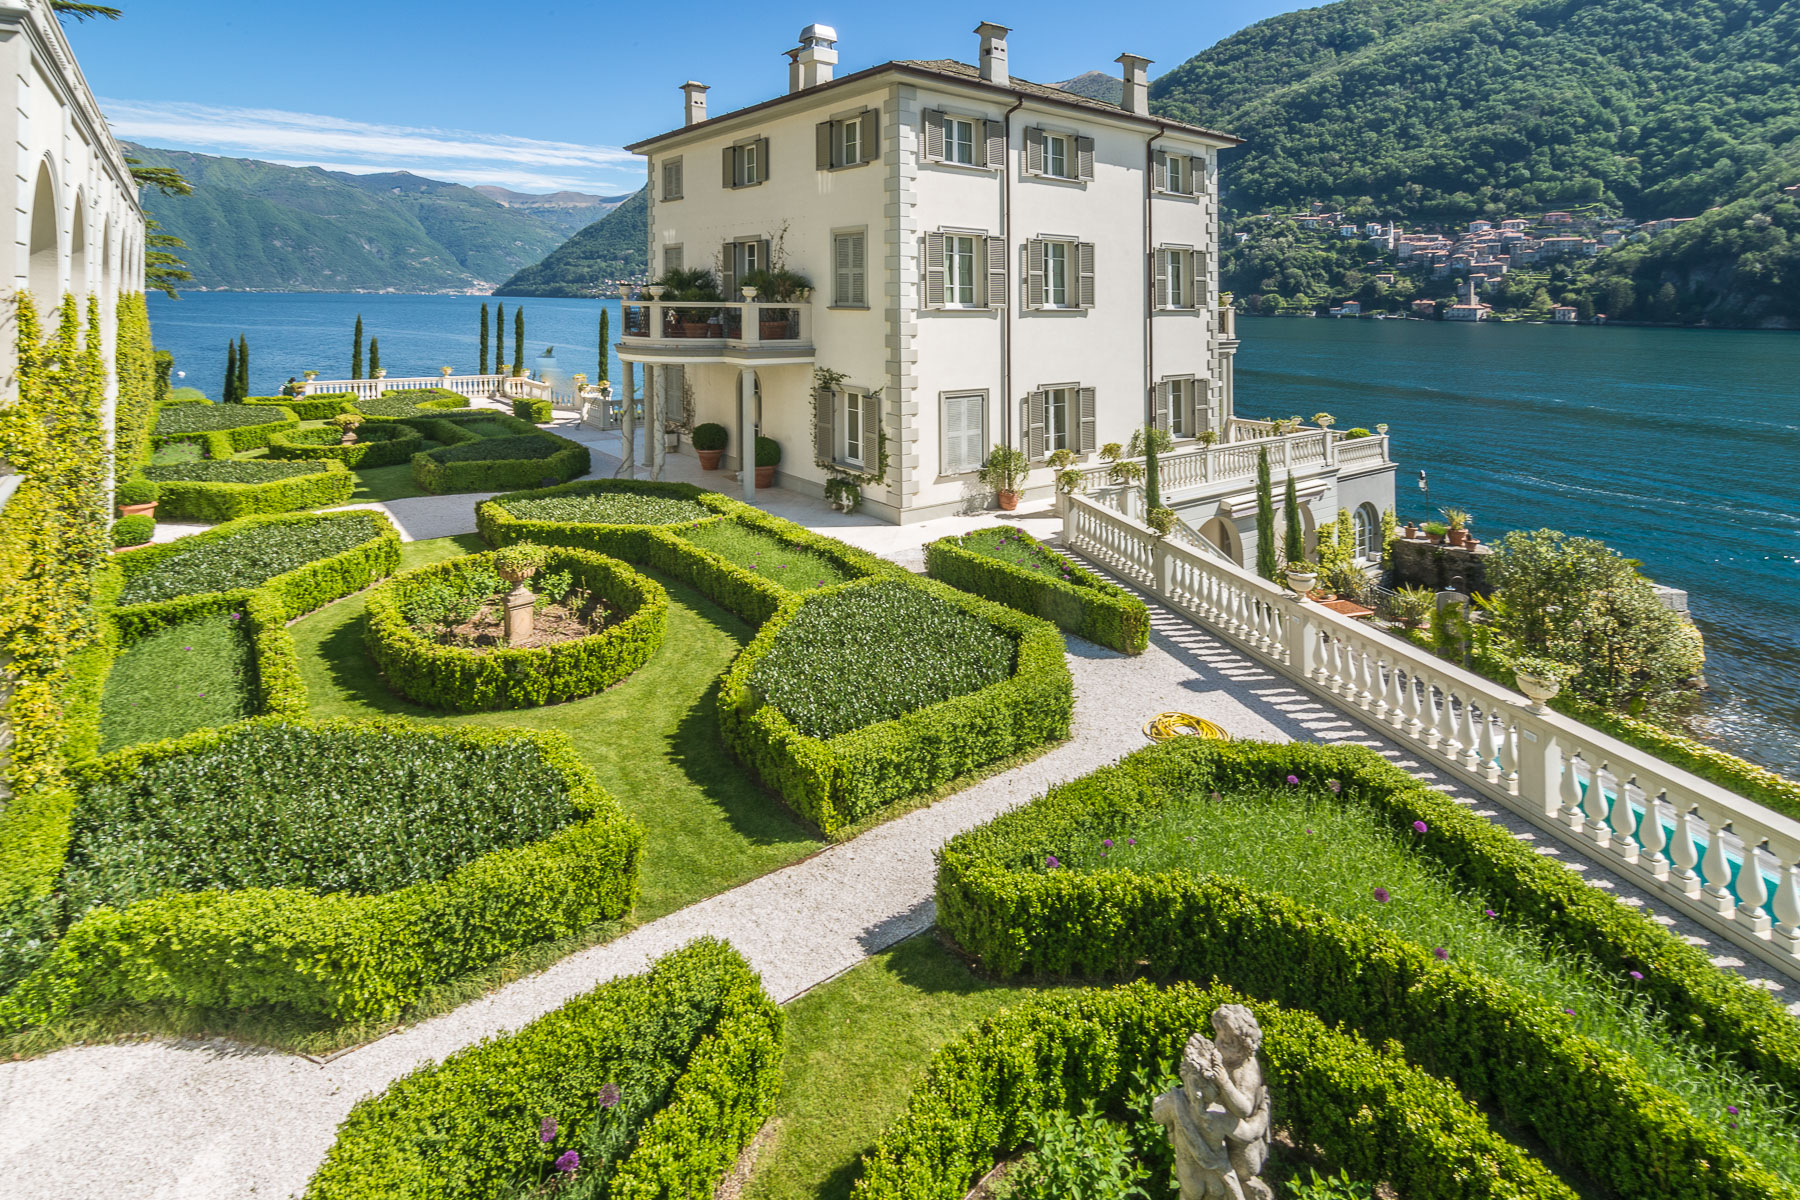 Other Residential Homes для того Продажа на Gorgeous lakefront trophy estate Laglio, Como Италия